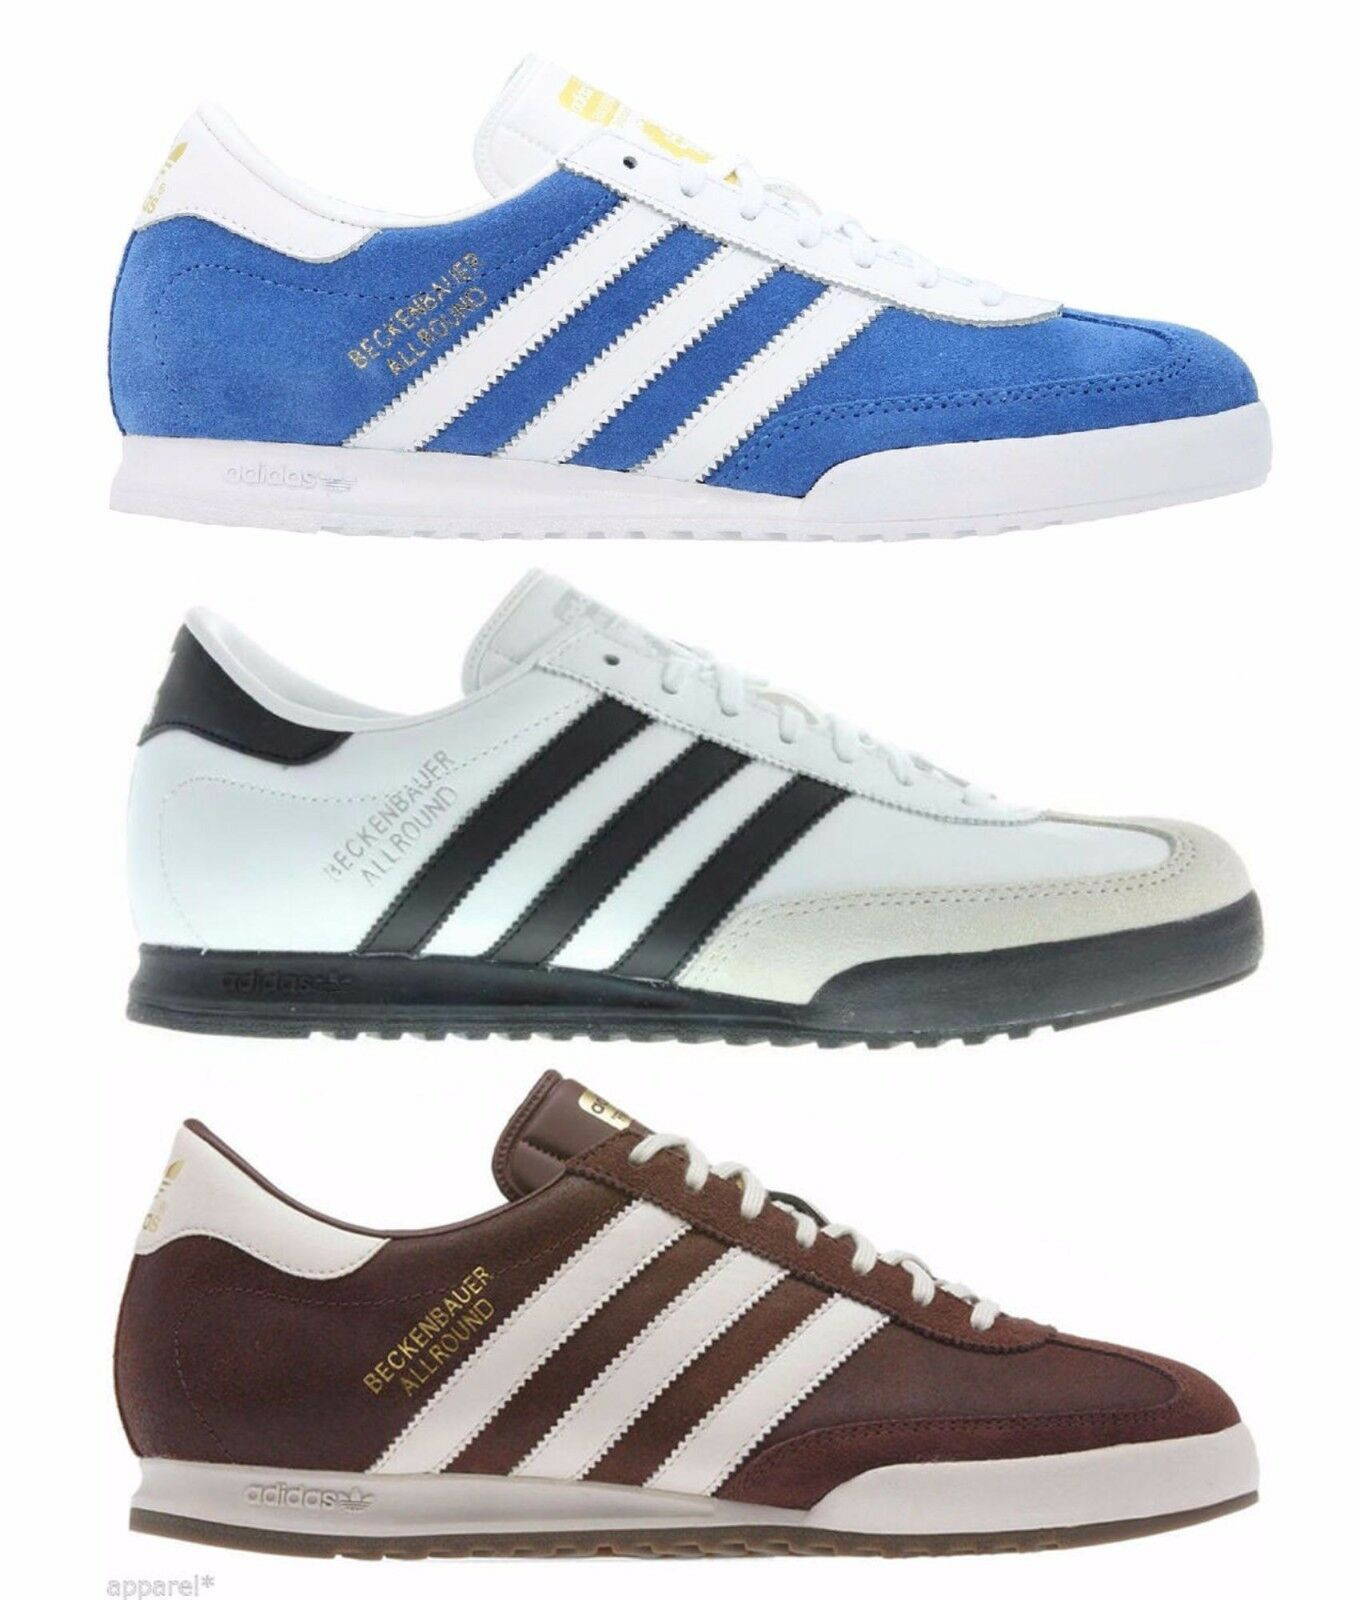 ✅ OLD SKOOL SKOOL SKOOL ADIDAS BECKENBAUER ALLROUND RETRO TRAINING schuhe Stiefel✅ 289399